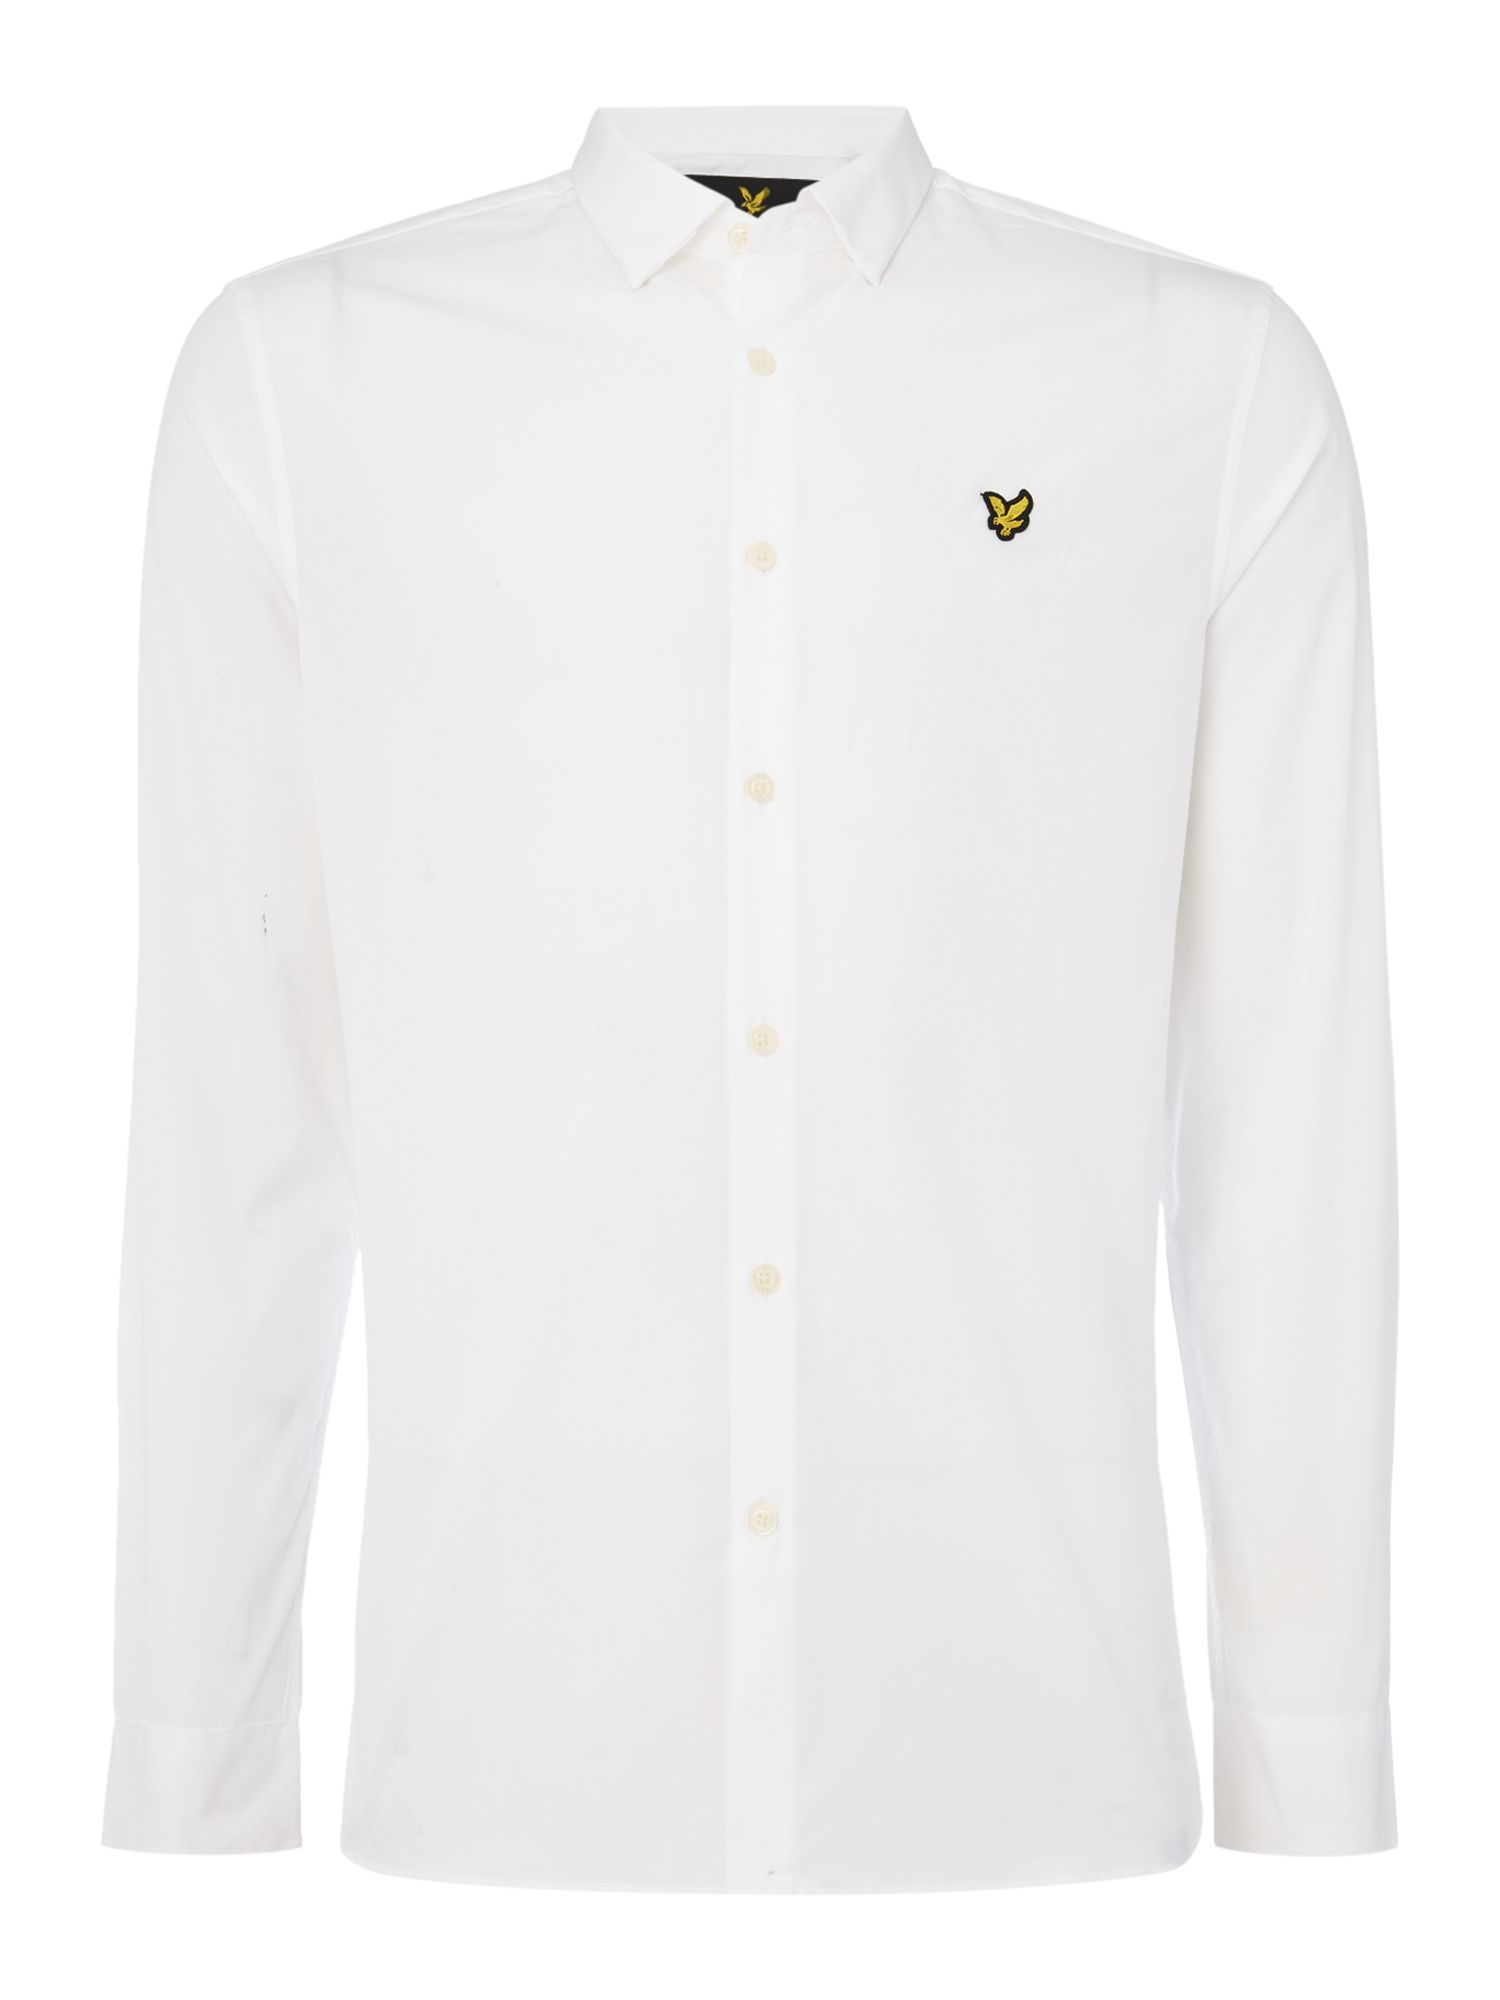 Lyle and Scott Men's Lyle and Scott Long sleeve slim fit poplin shirt, White